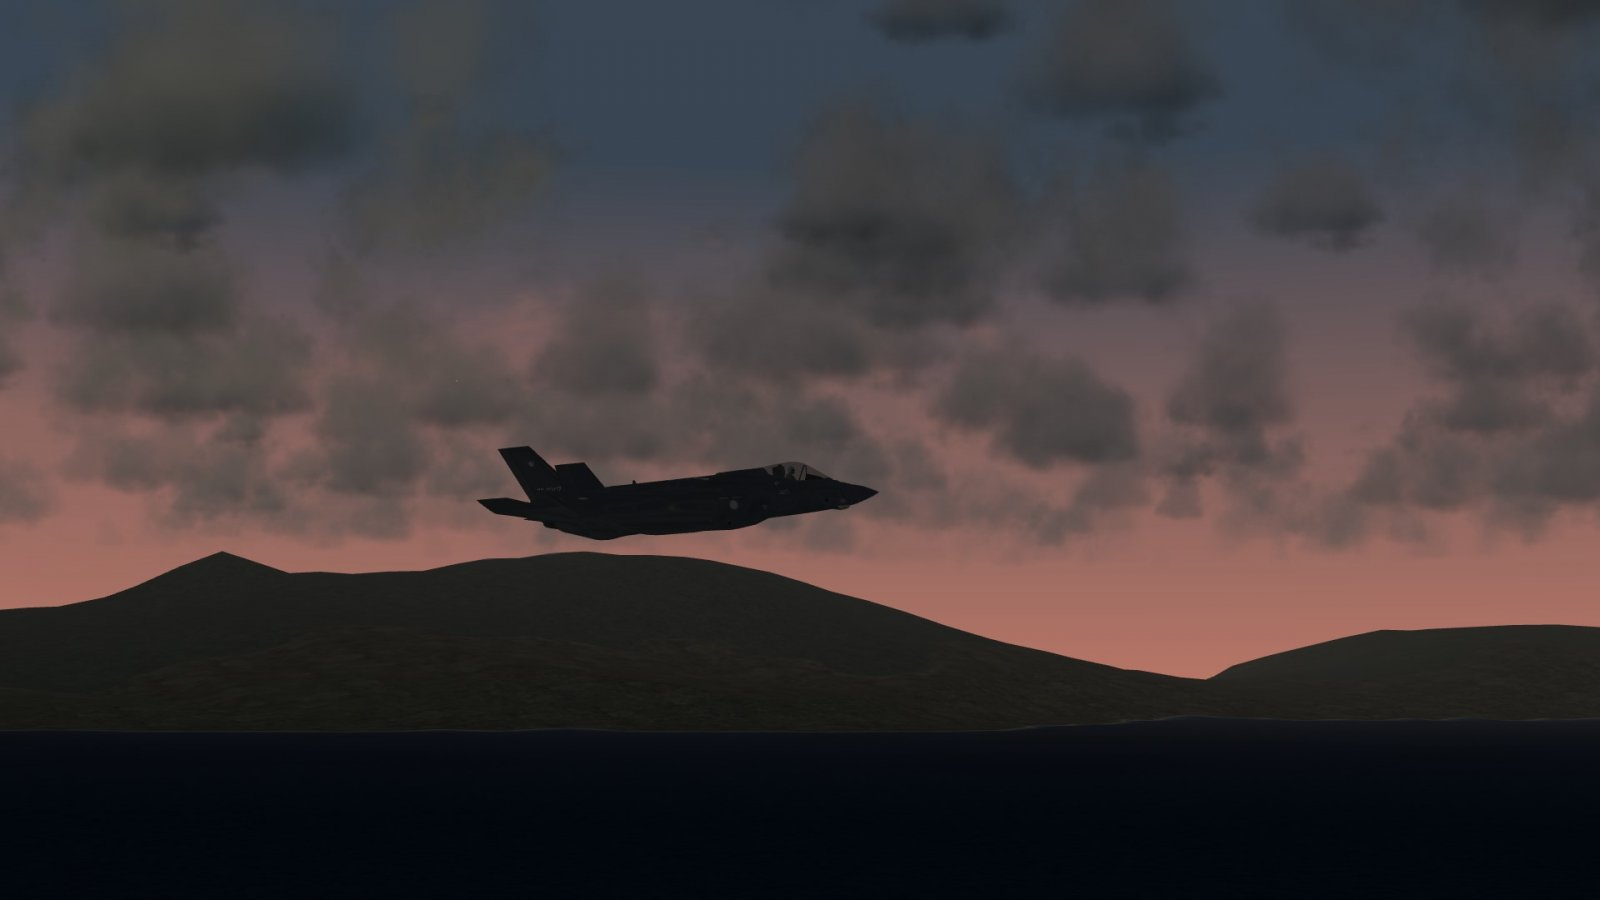 JASDF F-35A JSF in the Sunset Sky